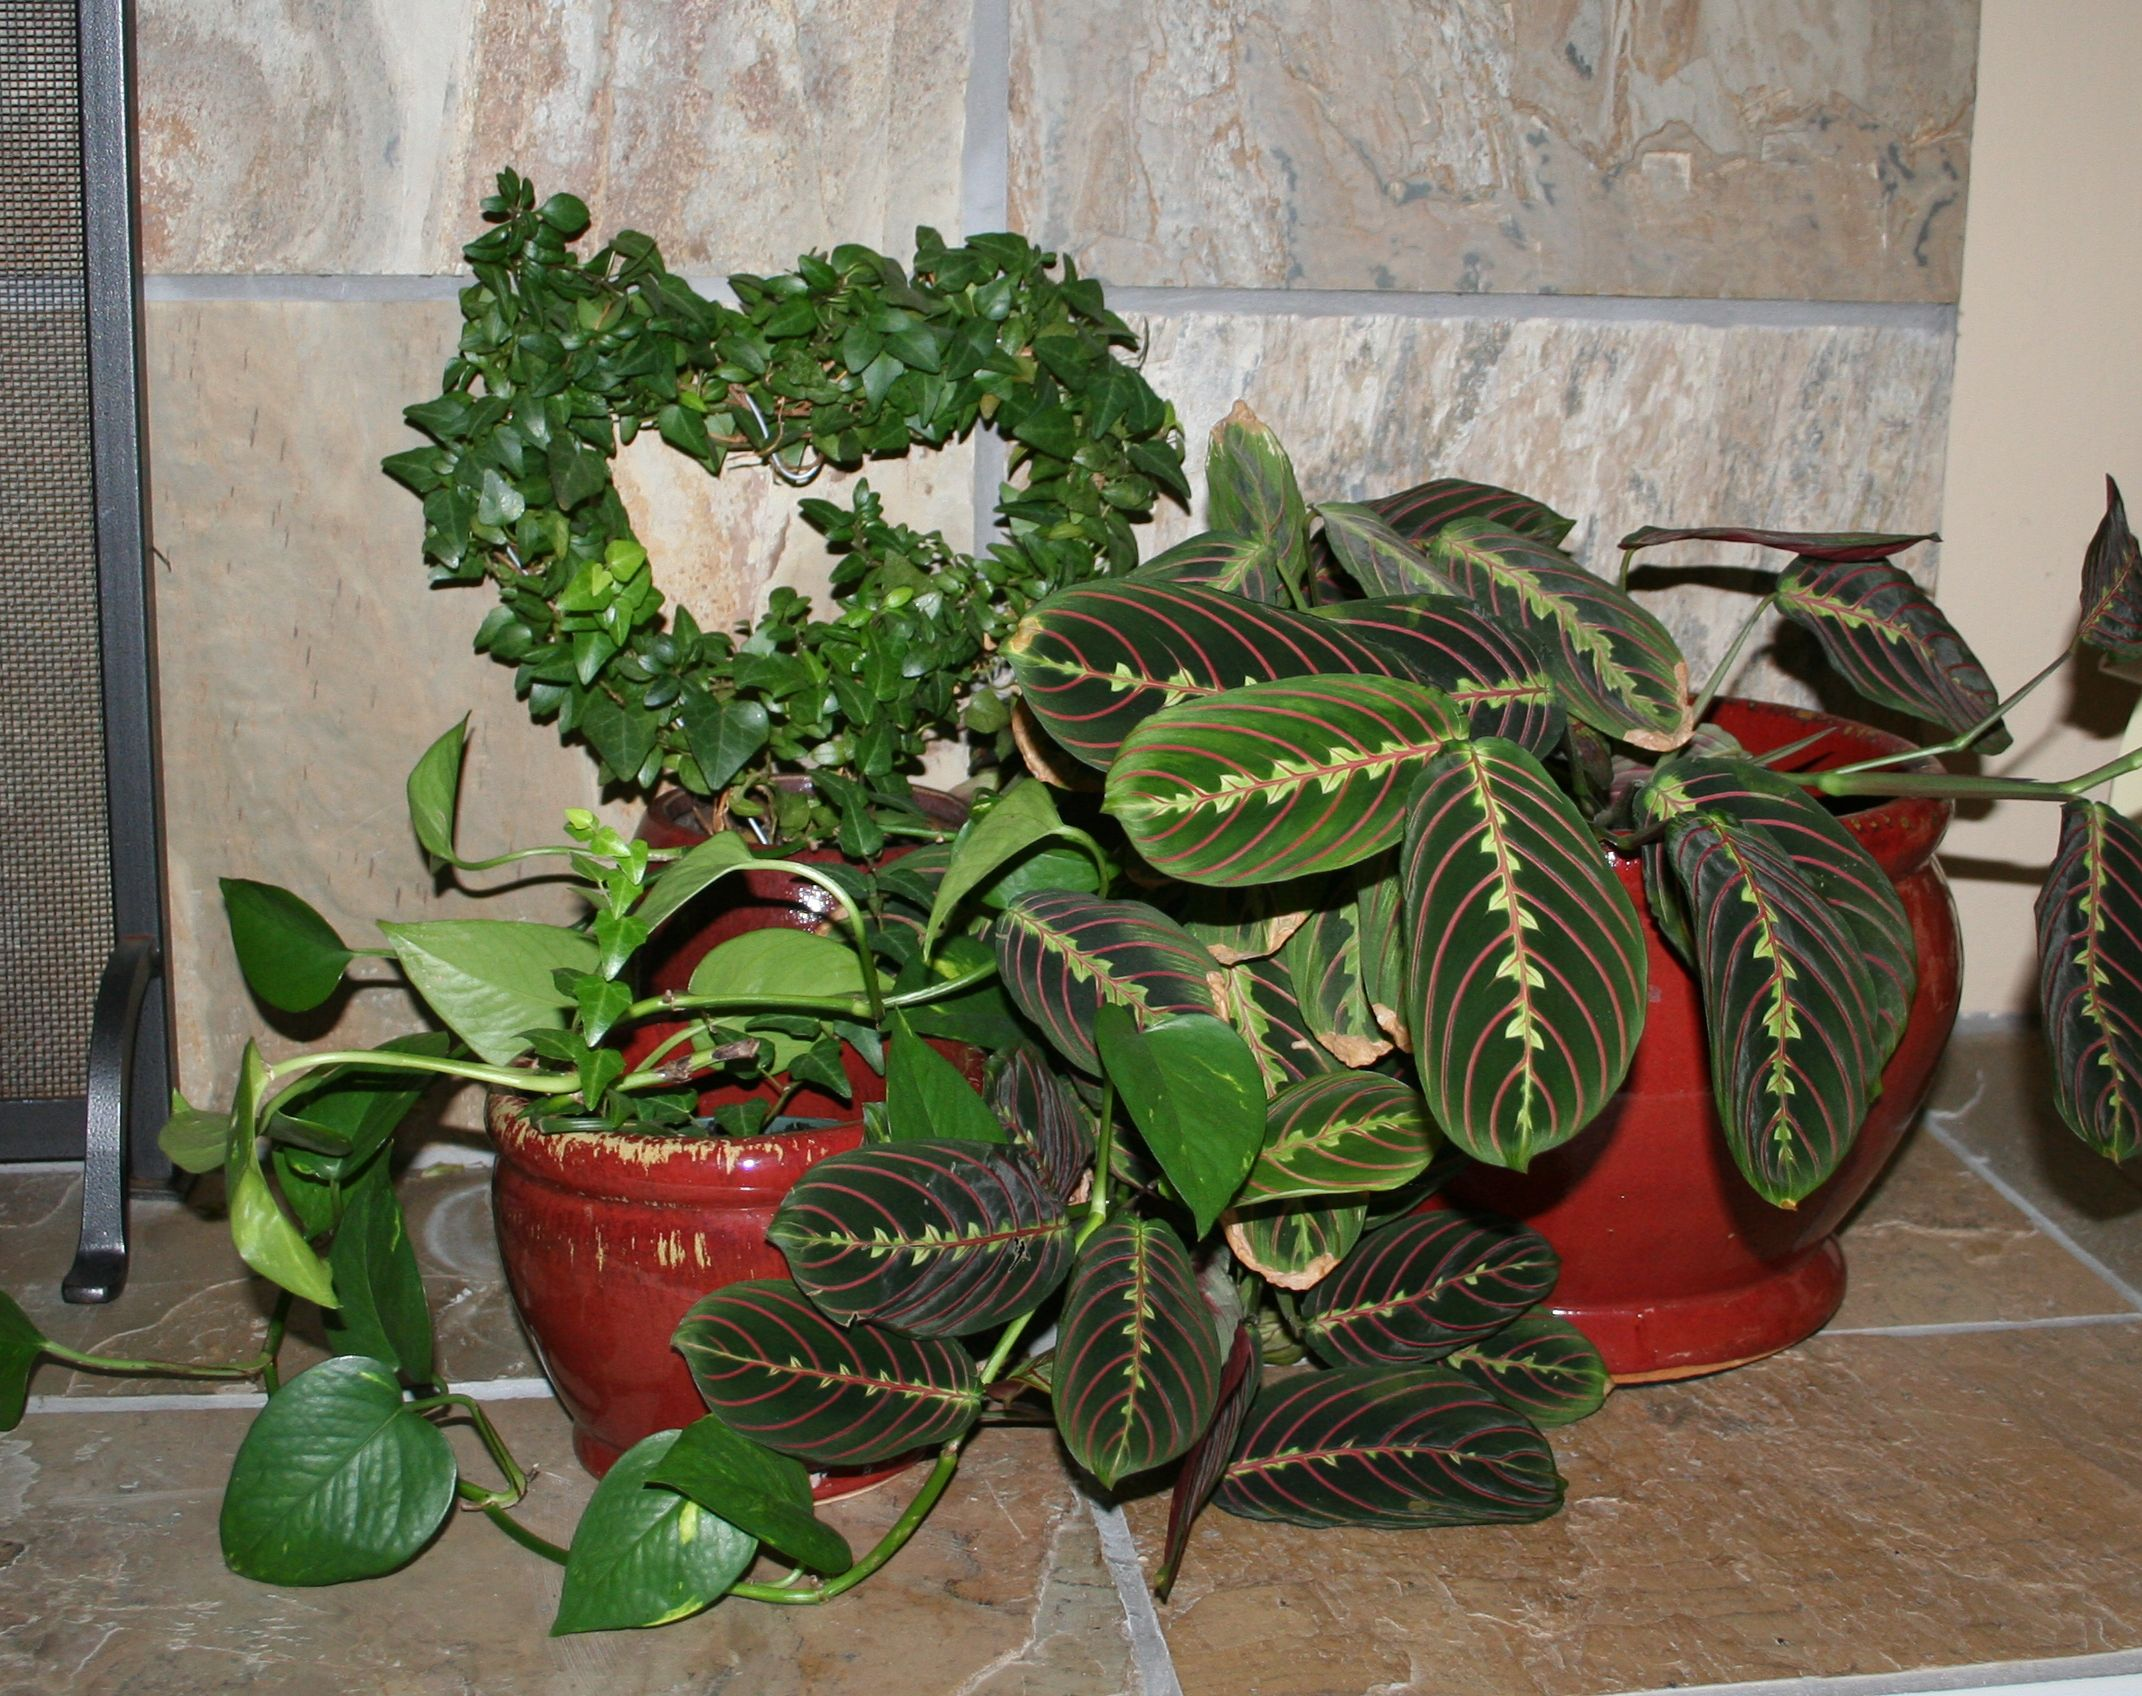 Decorating with house plants livebinders blog for Home decor with plants